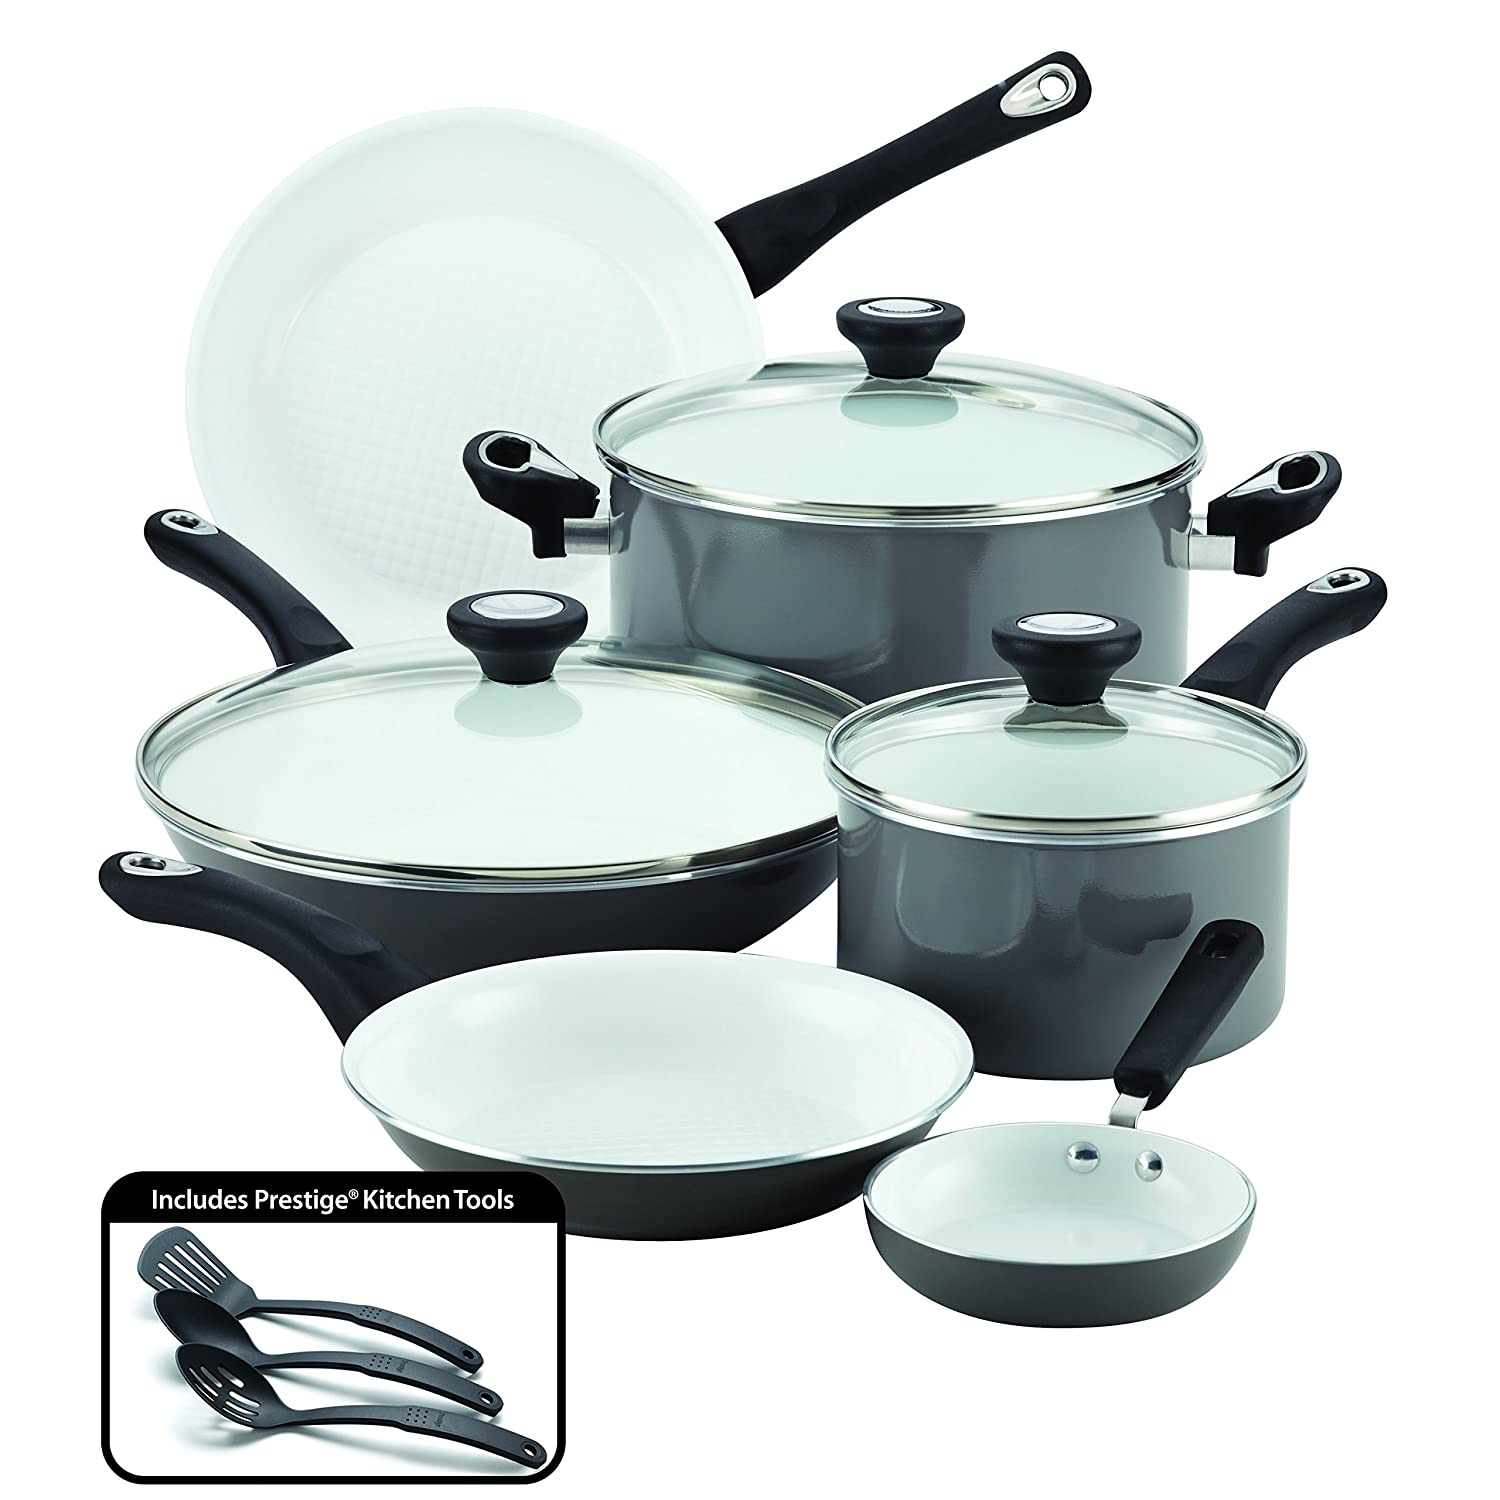 Amazon.com: Farberware Purecook Ceramic Nonstick Cookware 12 Piece ...